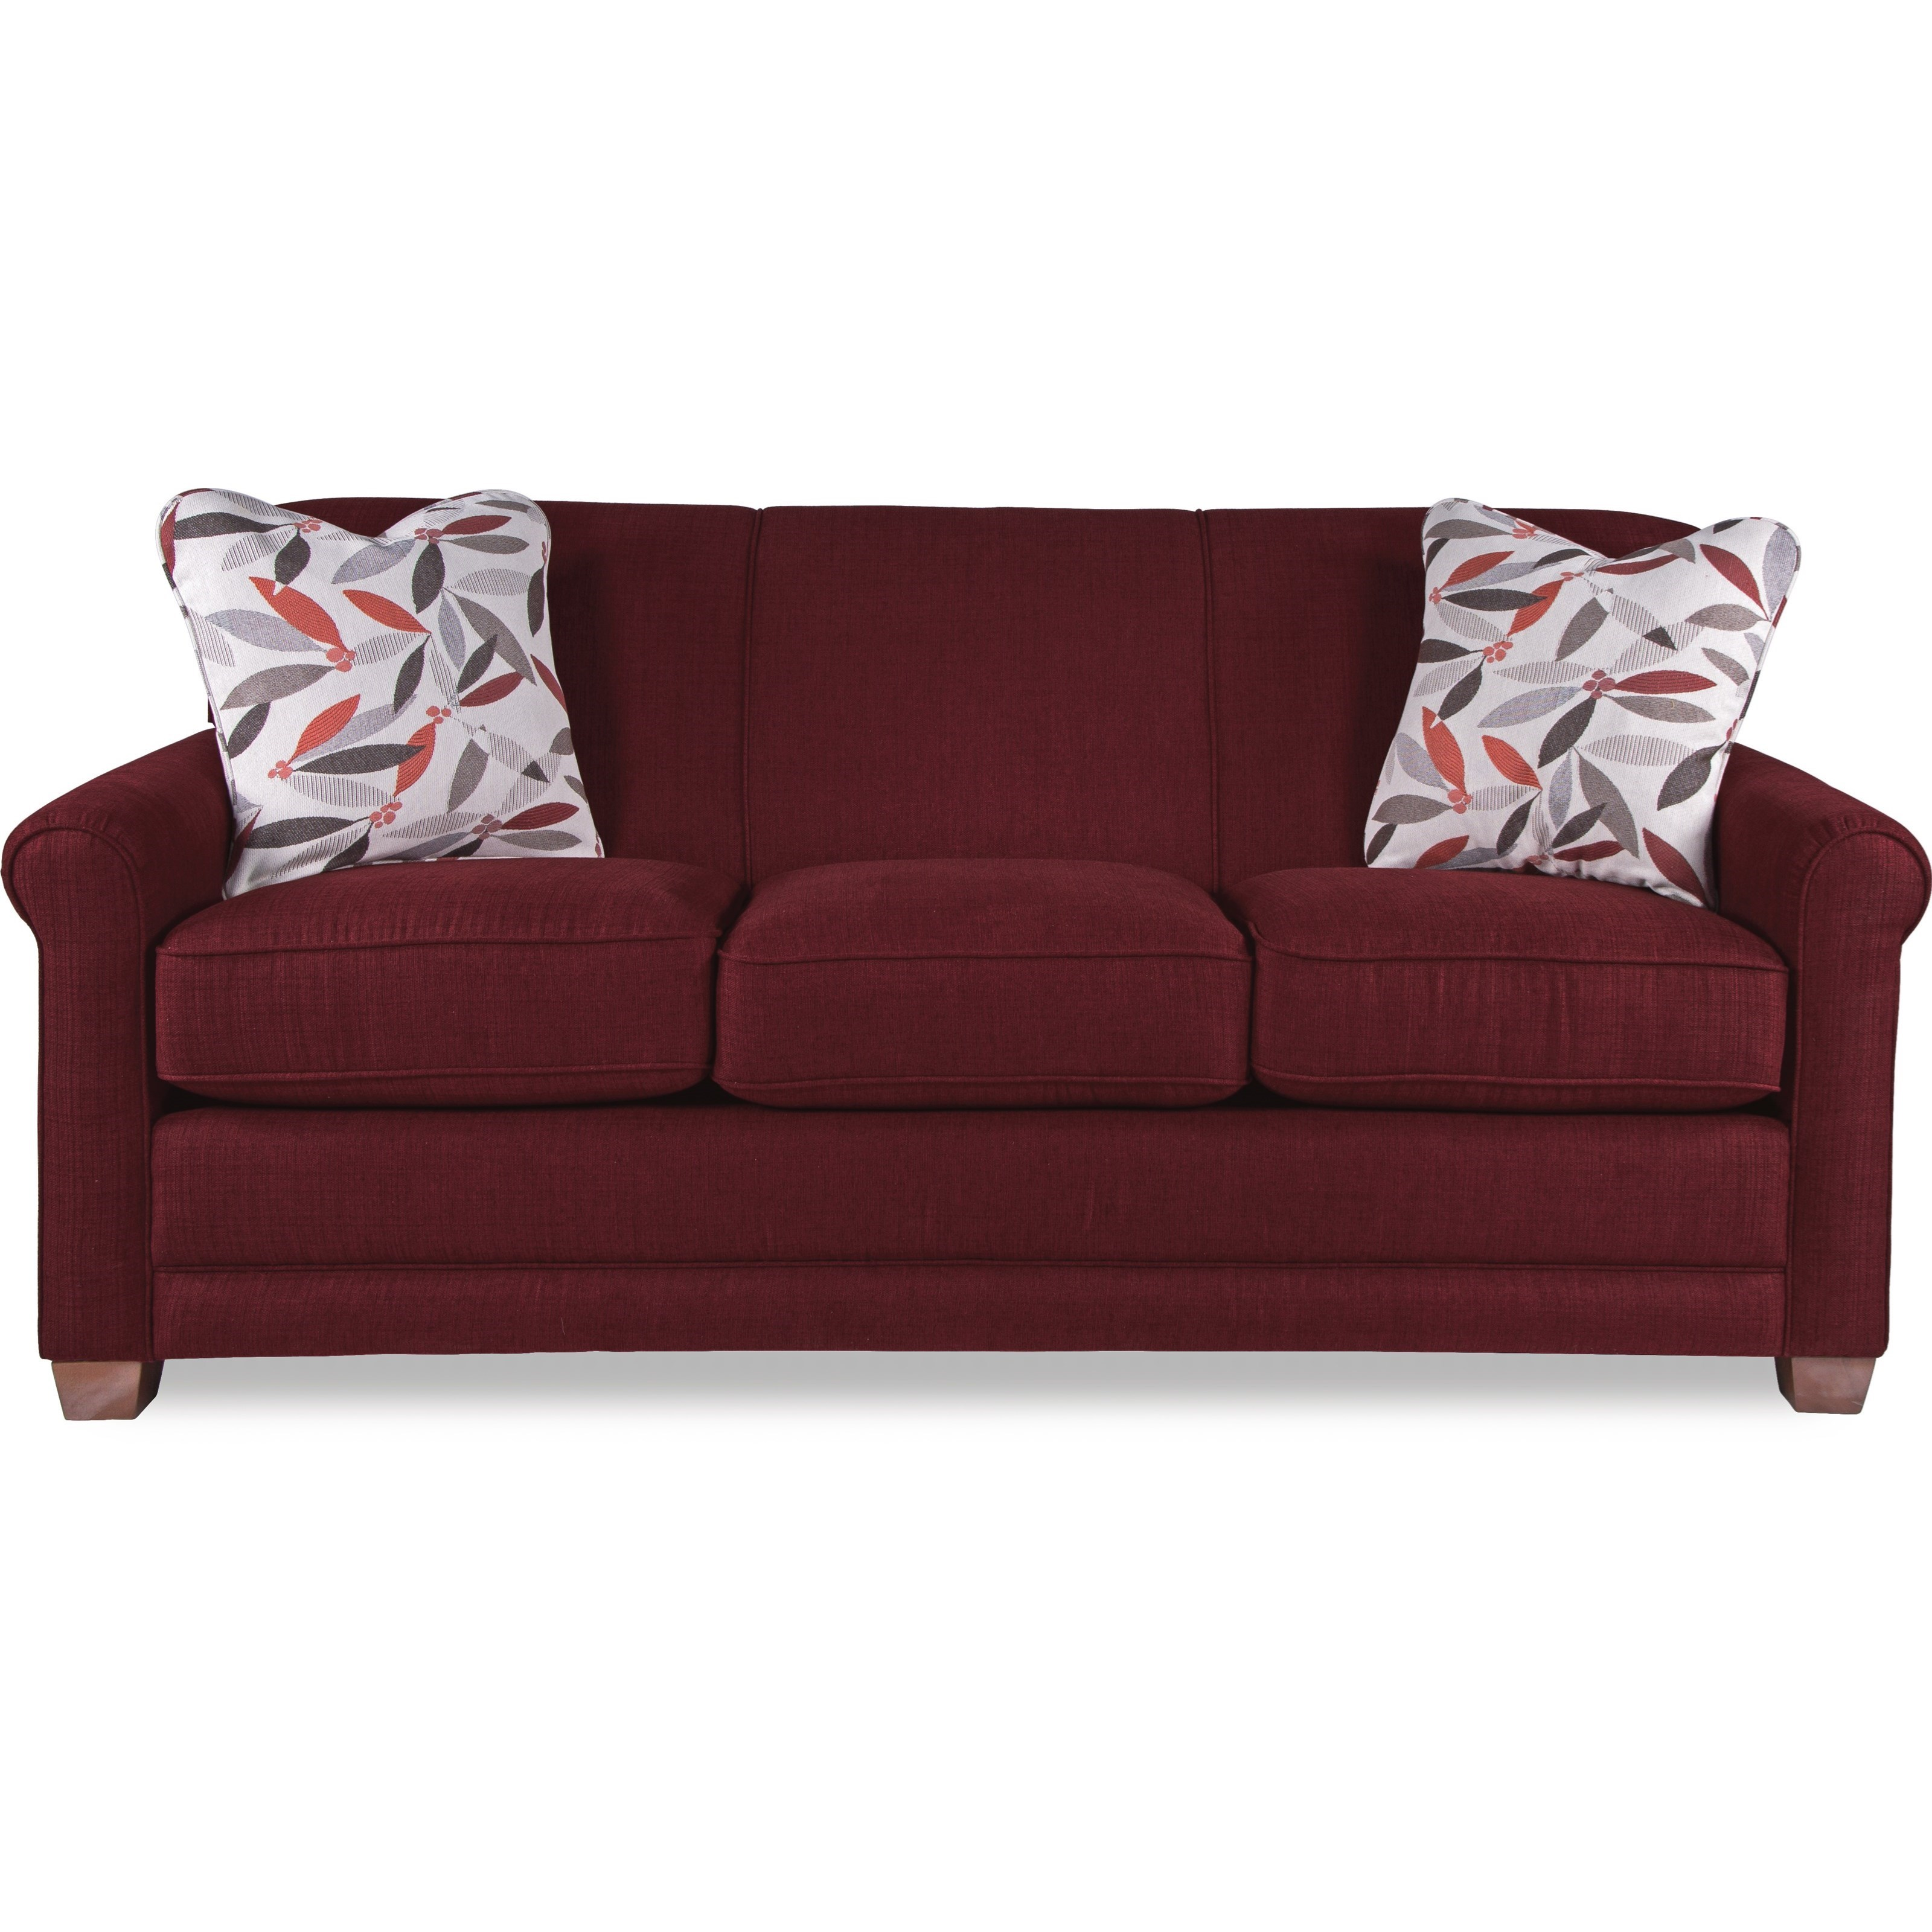 Casual Sofa with Premier ComfortCore Cushions